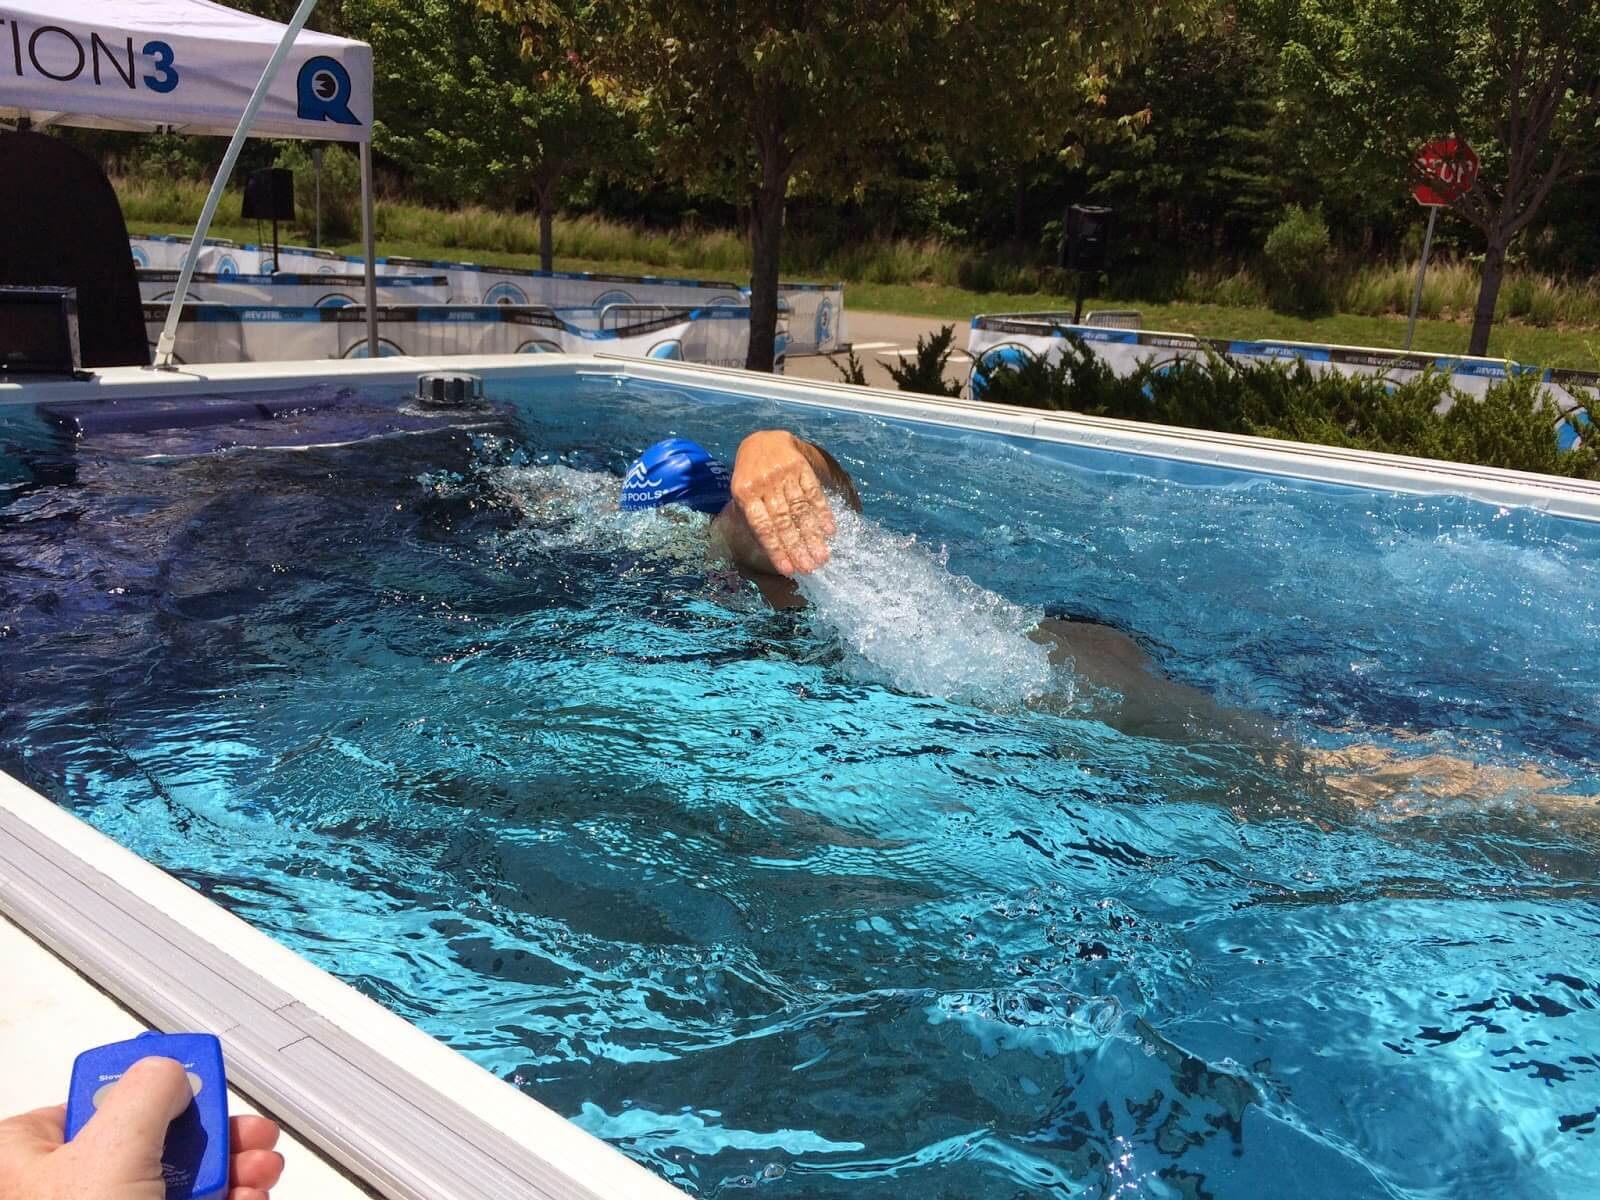 a triathlete picks up the pace in the Performance Endless Pool at the Rev3 Triathlon in Williamsburg, Virginia